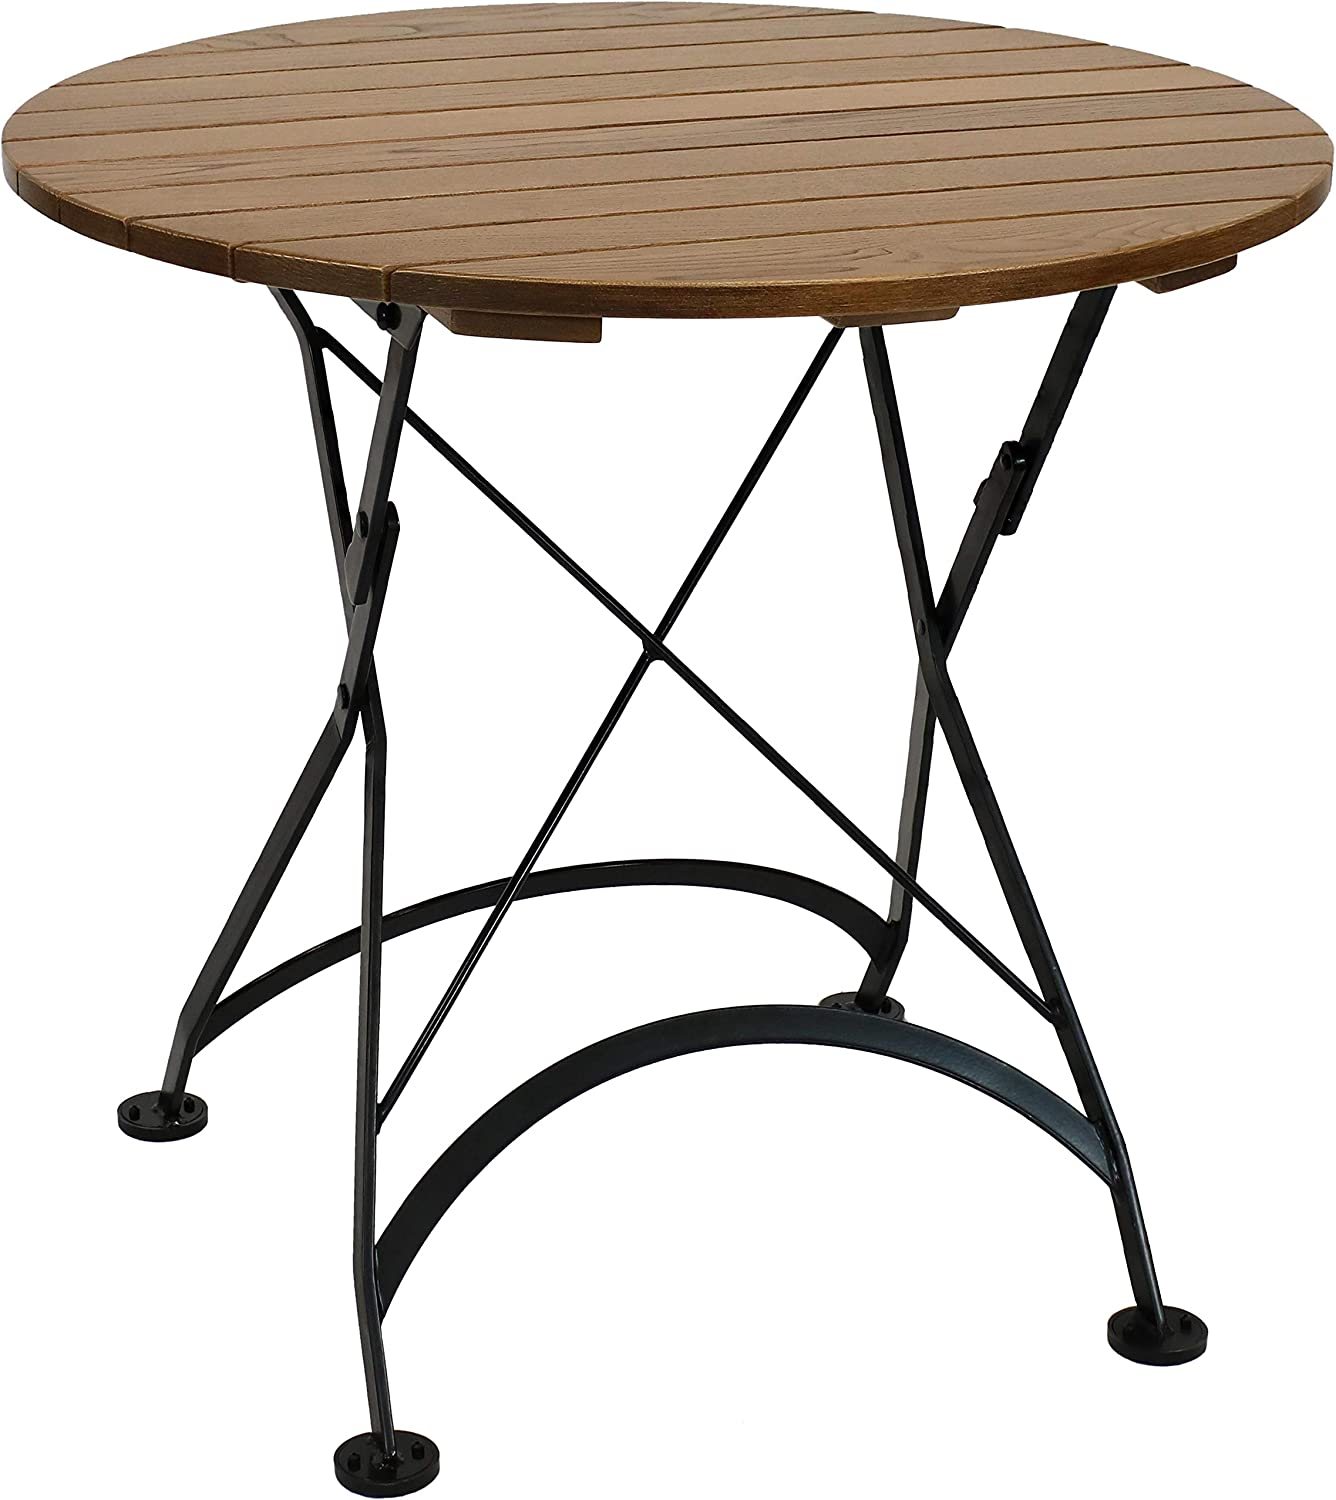 Amazon Com Sunnydaze European Chestnut Wood Folding Round Bistro Table Indoor Outdoor Table For Patio Kitchen Or Dining Room Foldable For Easy Storage 32 Inch Diameter Sunnydaze Decor Kitchen Dining